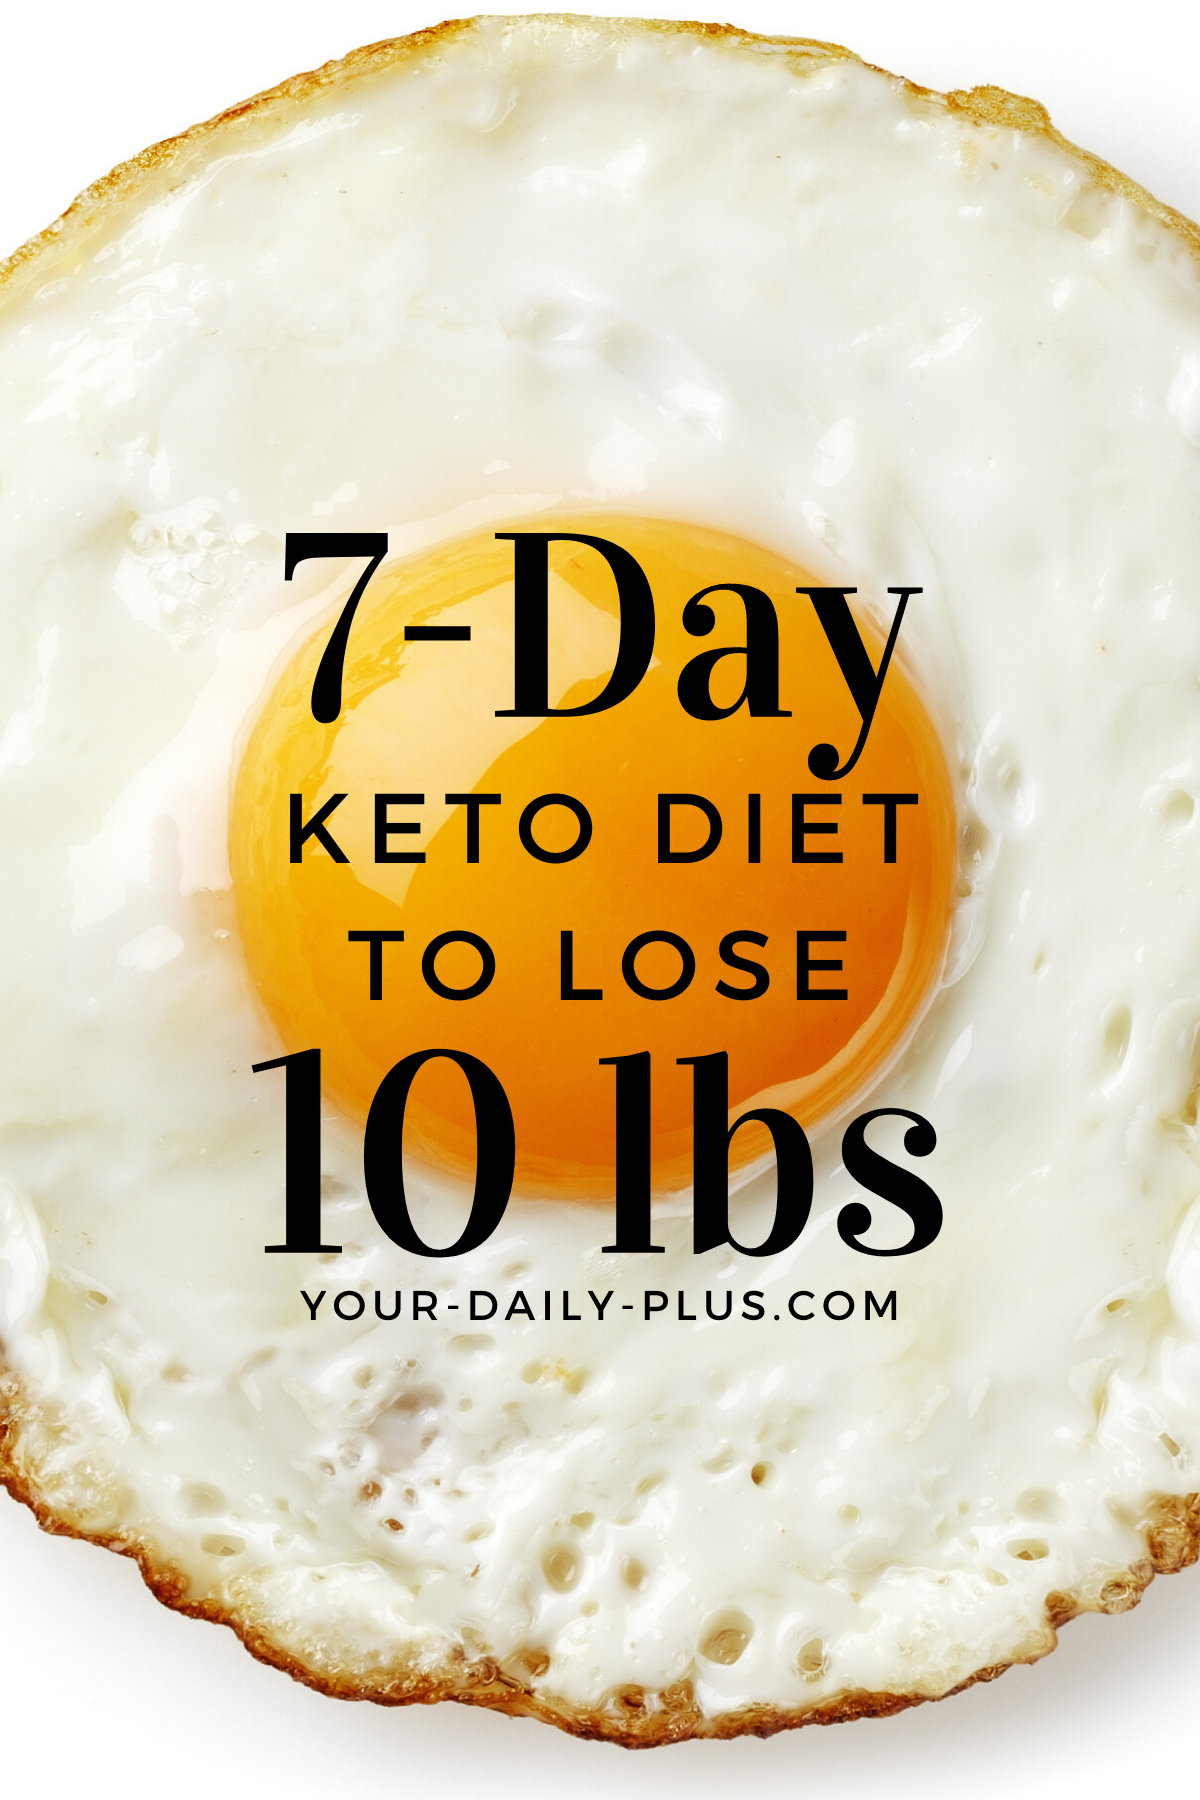 This 7-day keto diet meal plan is great for weight loss. You are also satiated on the ketogenic diet so there are no urges to pick up those unhealthy processed foods that wreak havoc on your body. #ketodietmenu #ketodietplan #ketodiet #ketogenicdiet